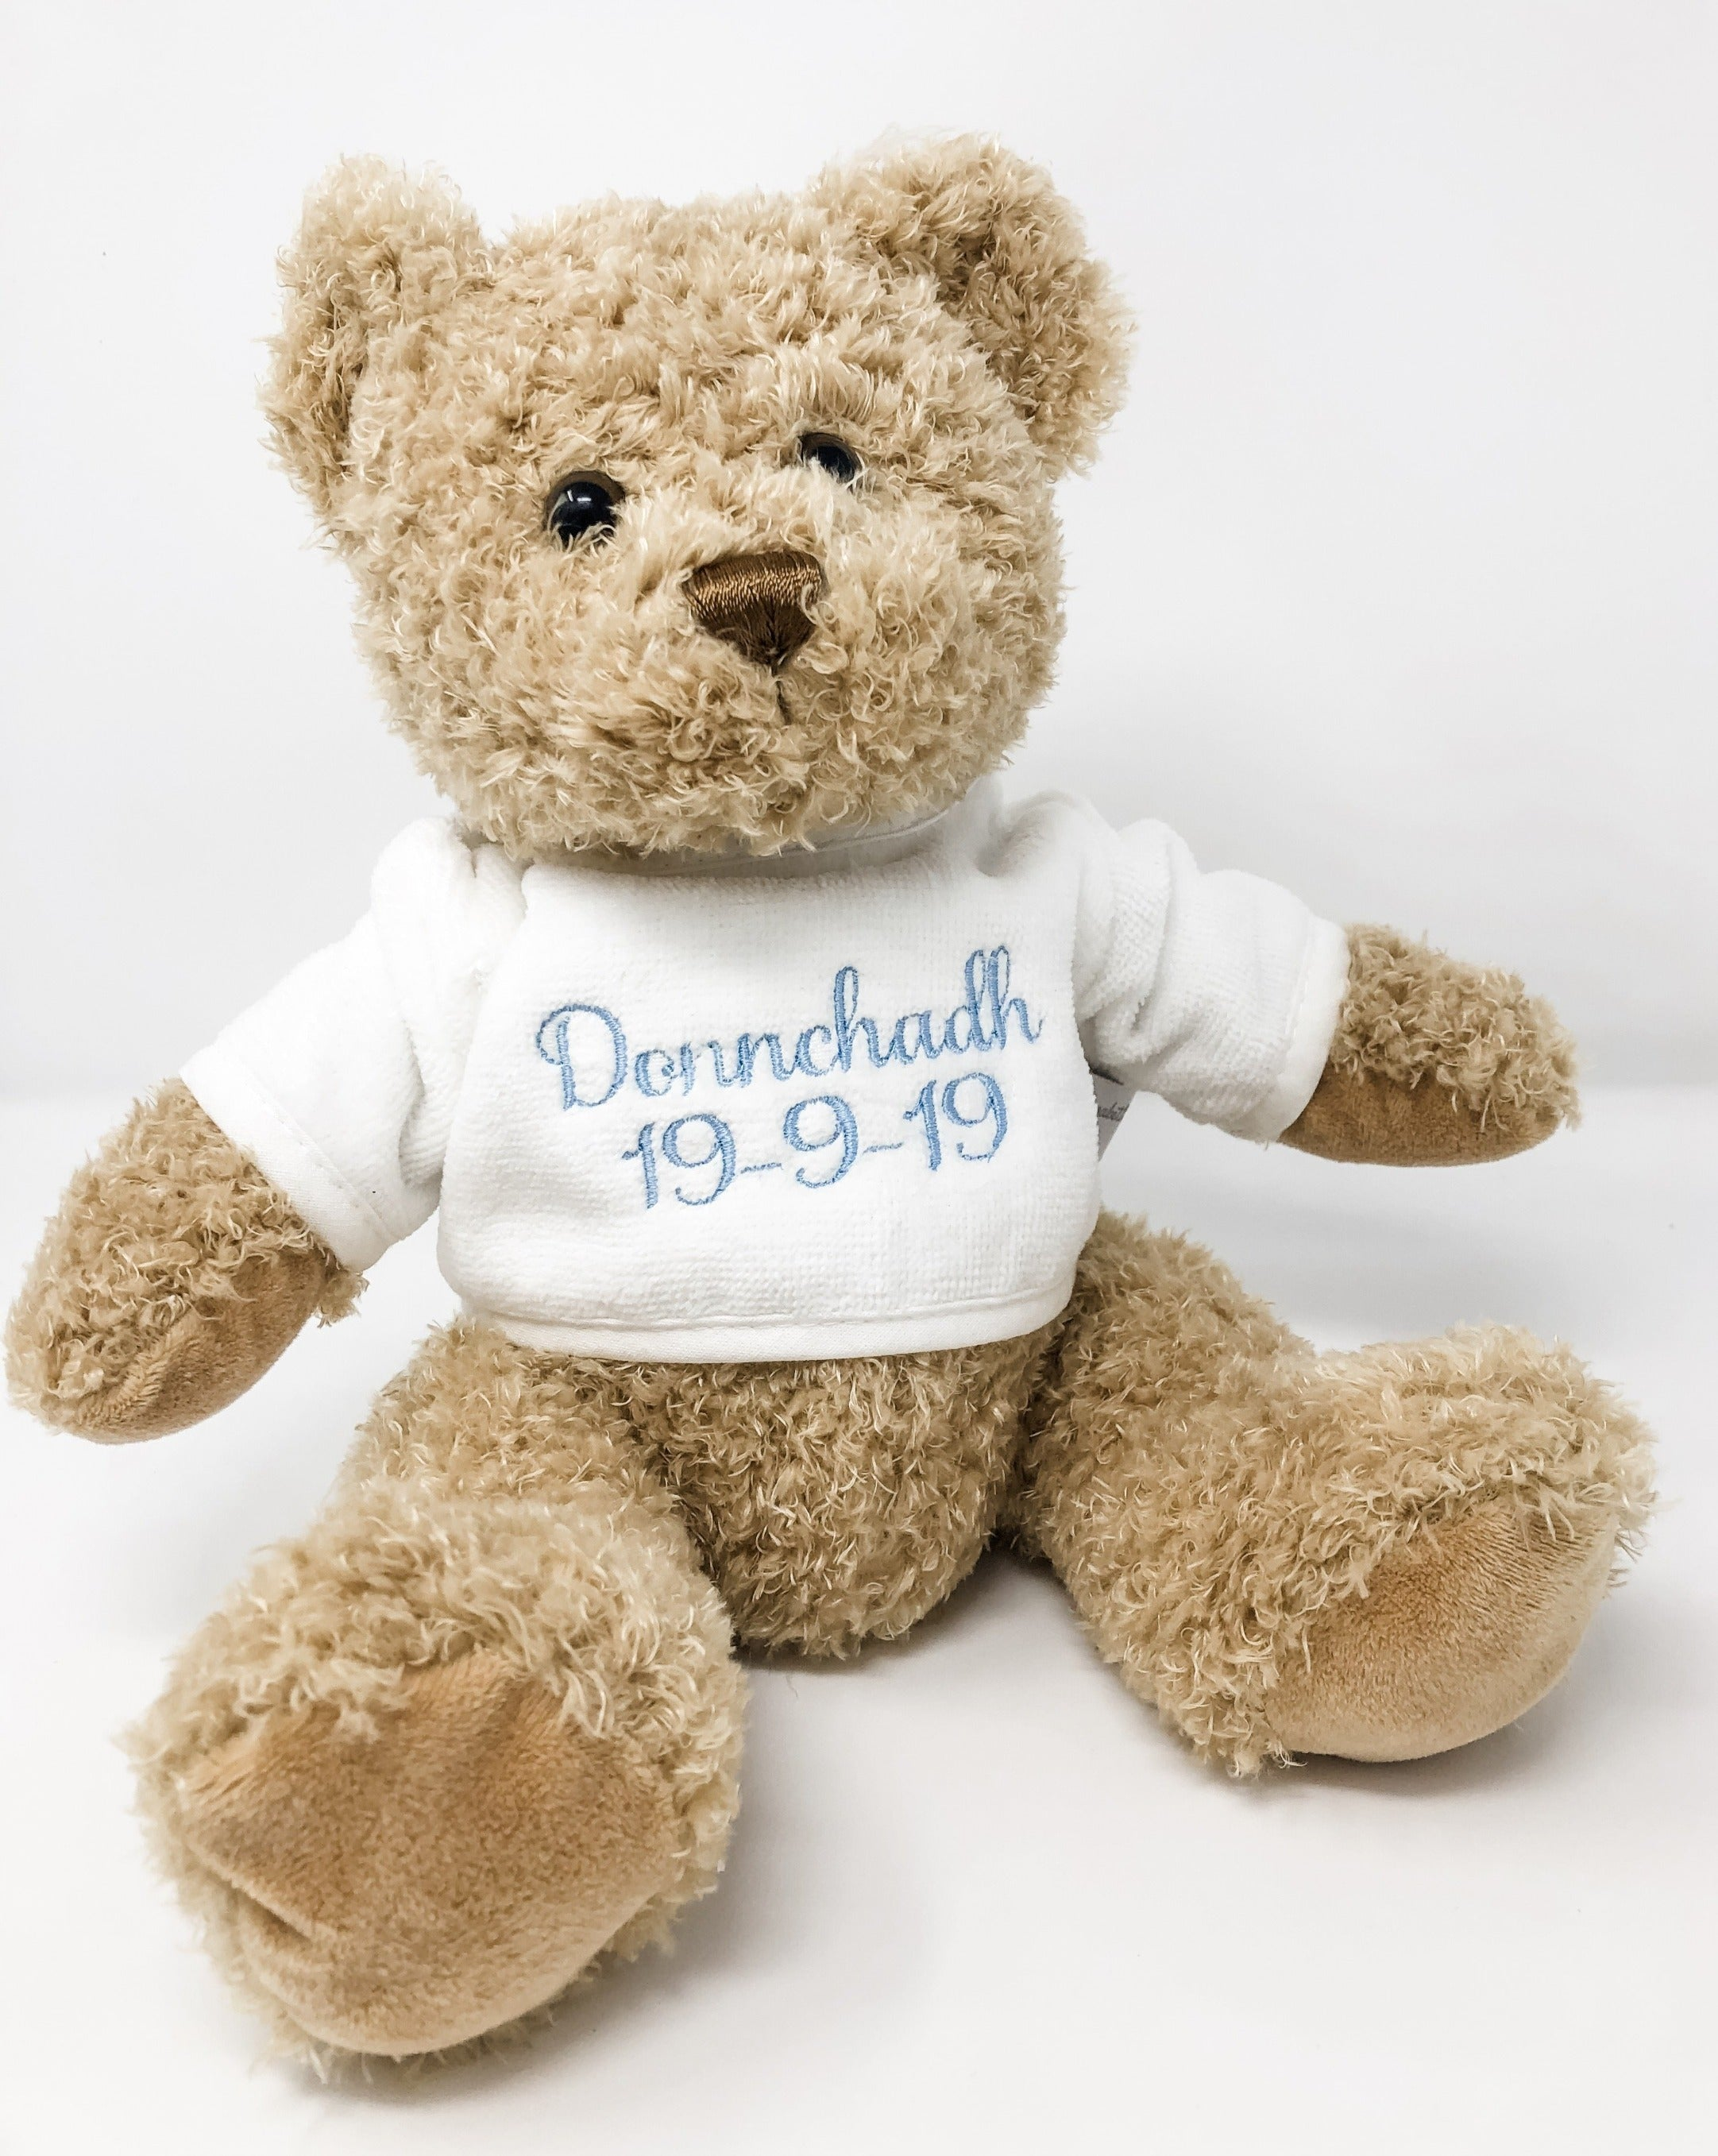 Baby's 1st Teddy Bear - Personalised